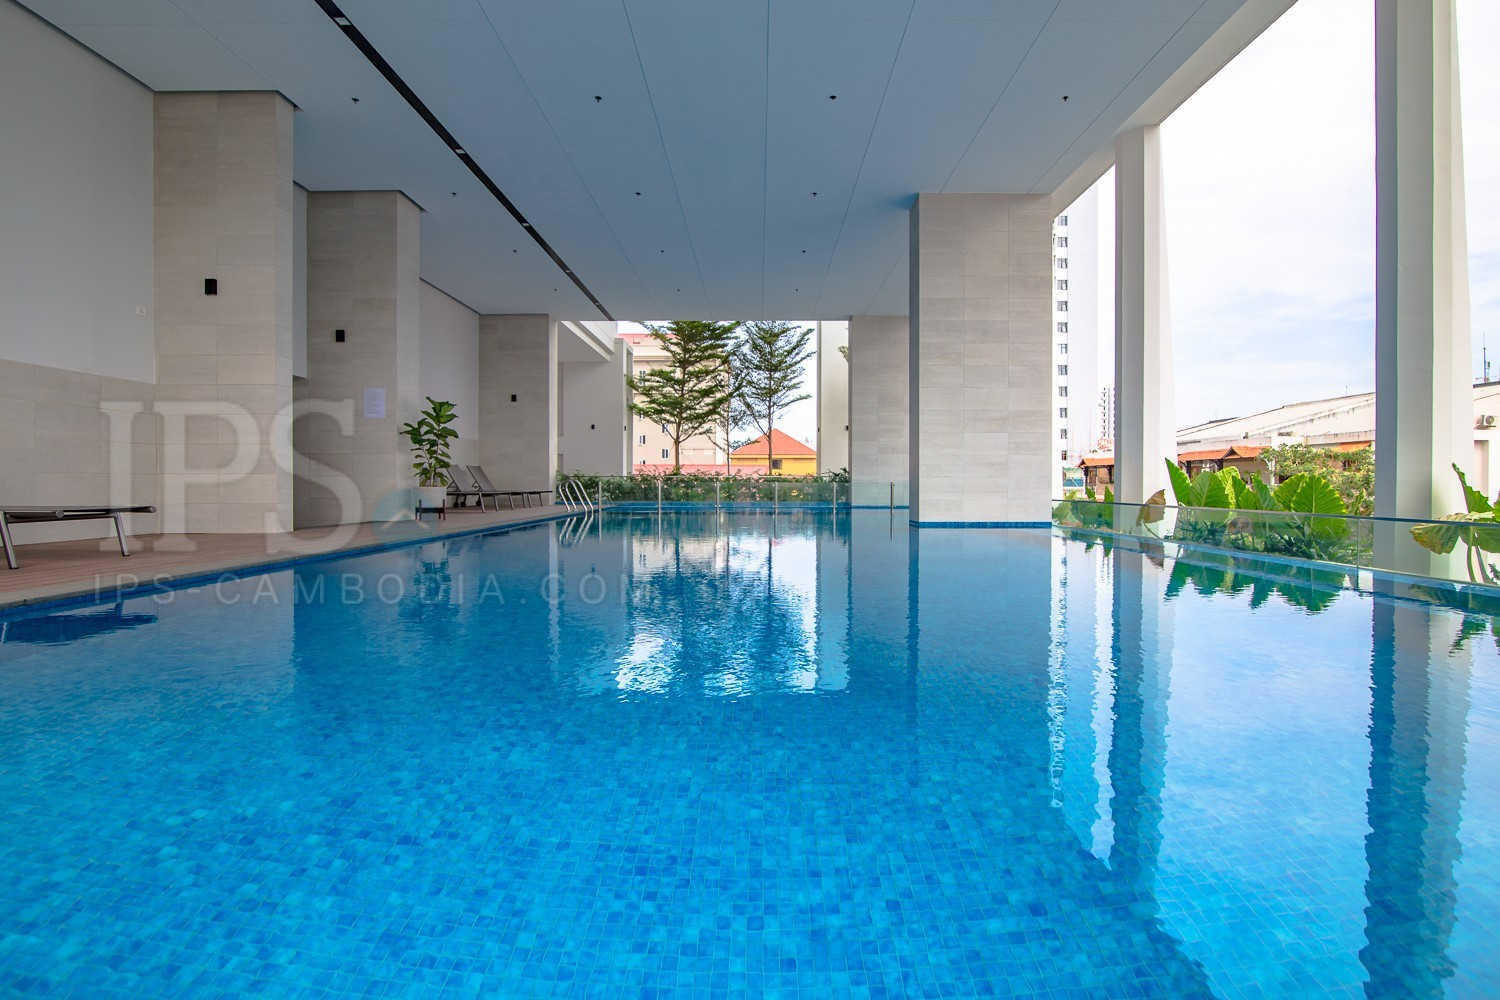 2 Bedroom Condo For Rent - Embassy Central, BKK1, Phnom Penh